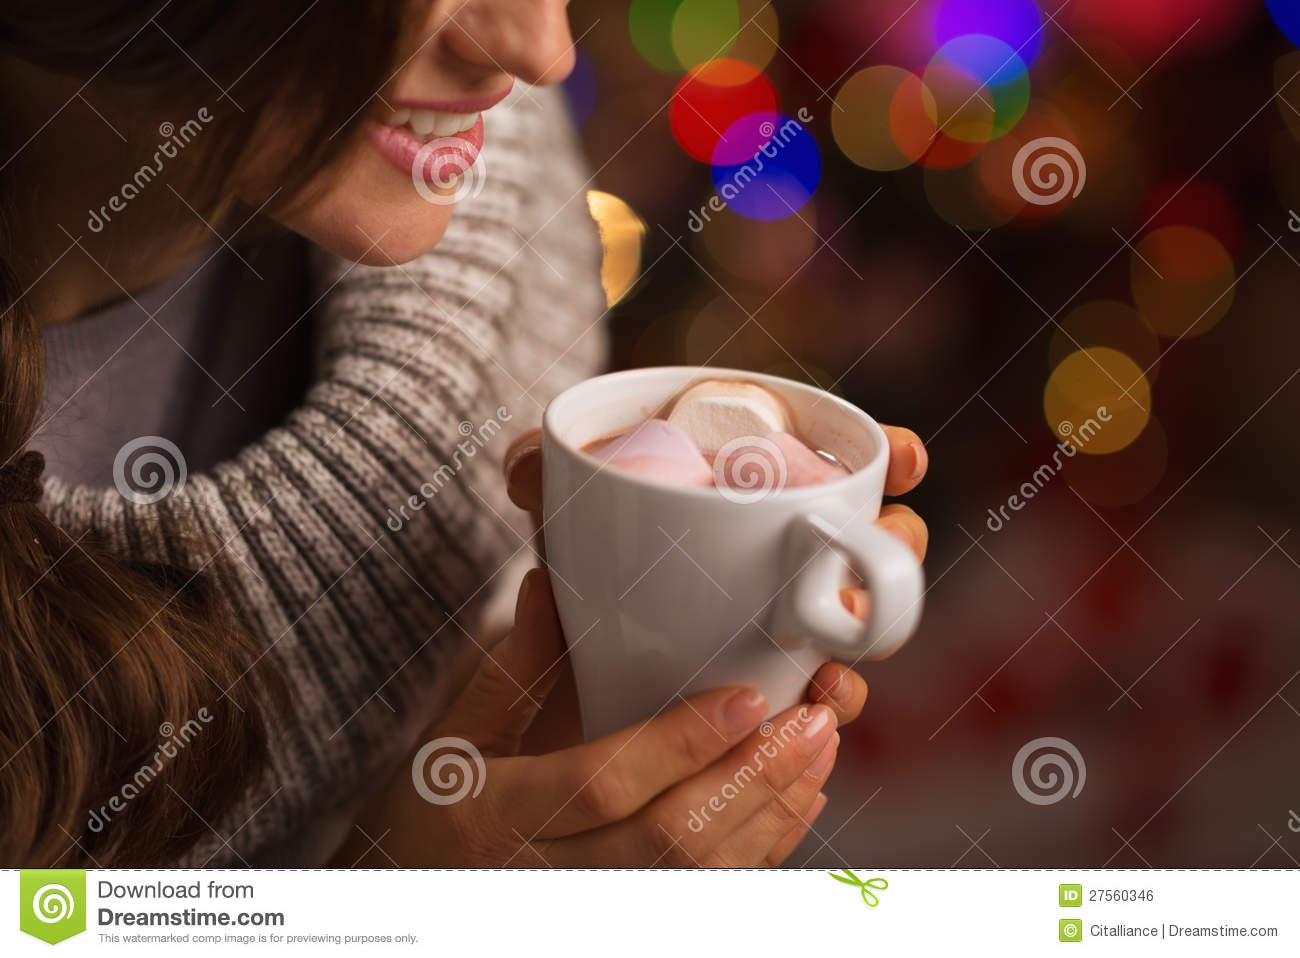 Closeup on hot chocolate in hand of woman